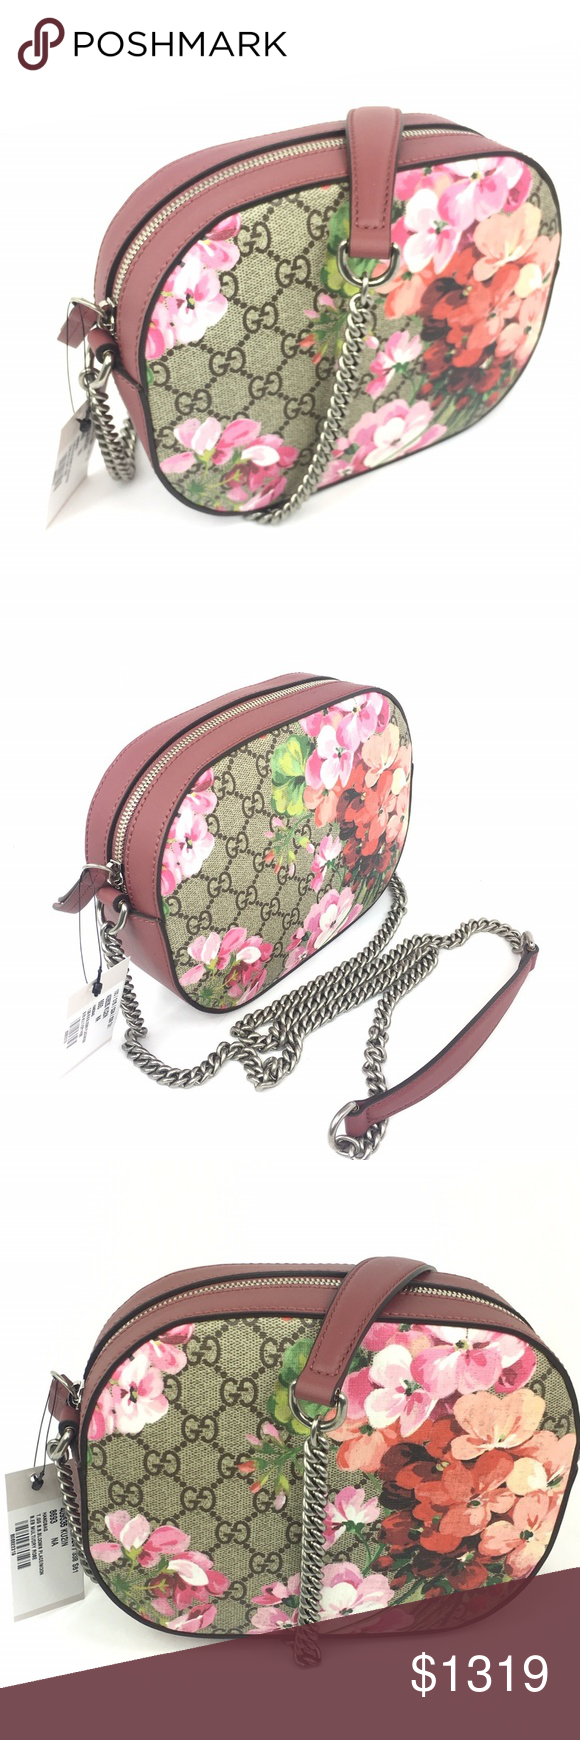 cc81e8af5 #409535 GG Supreme Bloom Crossbody with Bloom Box * Crossbody Style Bag *  Beige/Ebony GG Supreme Coated Canvas Exterior with Blooms Pattern * Rose  Colored ...